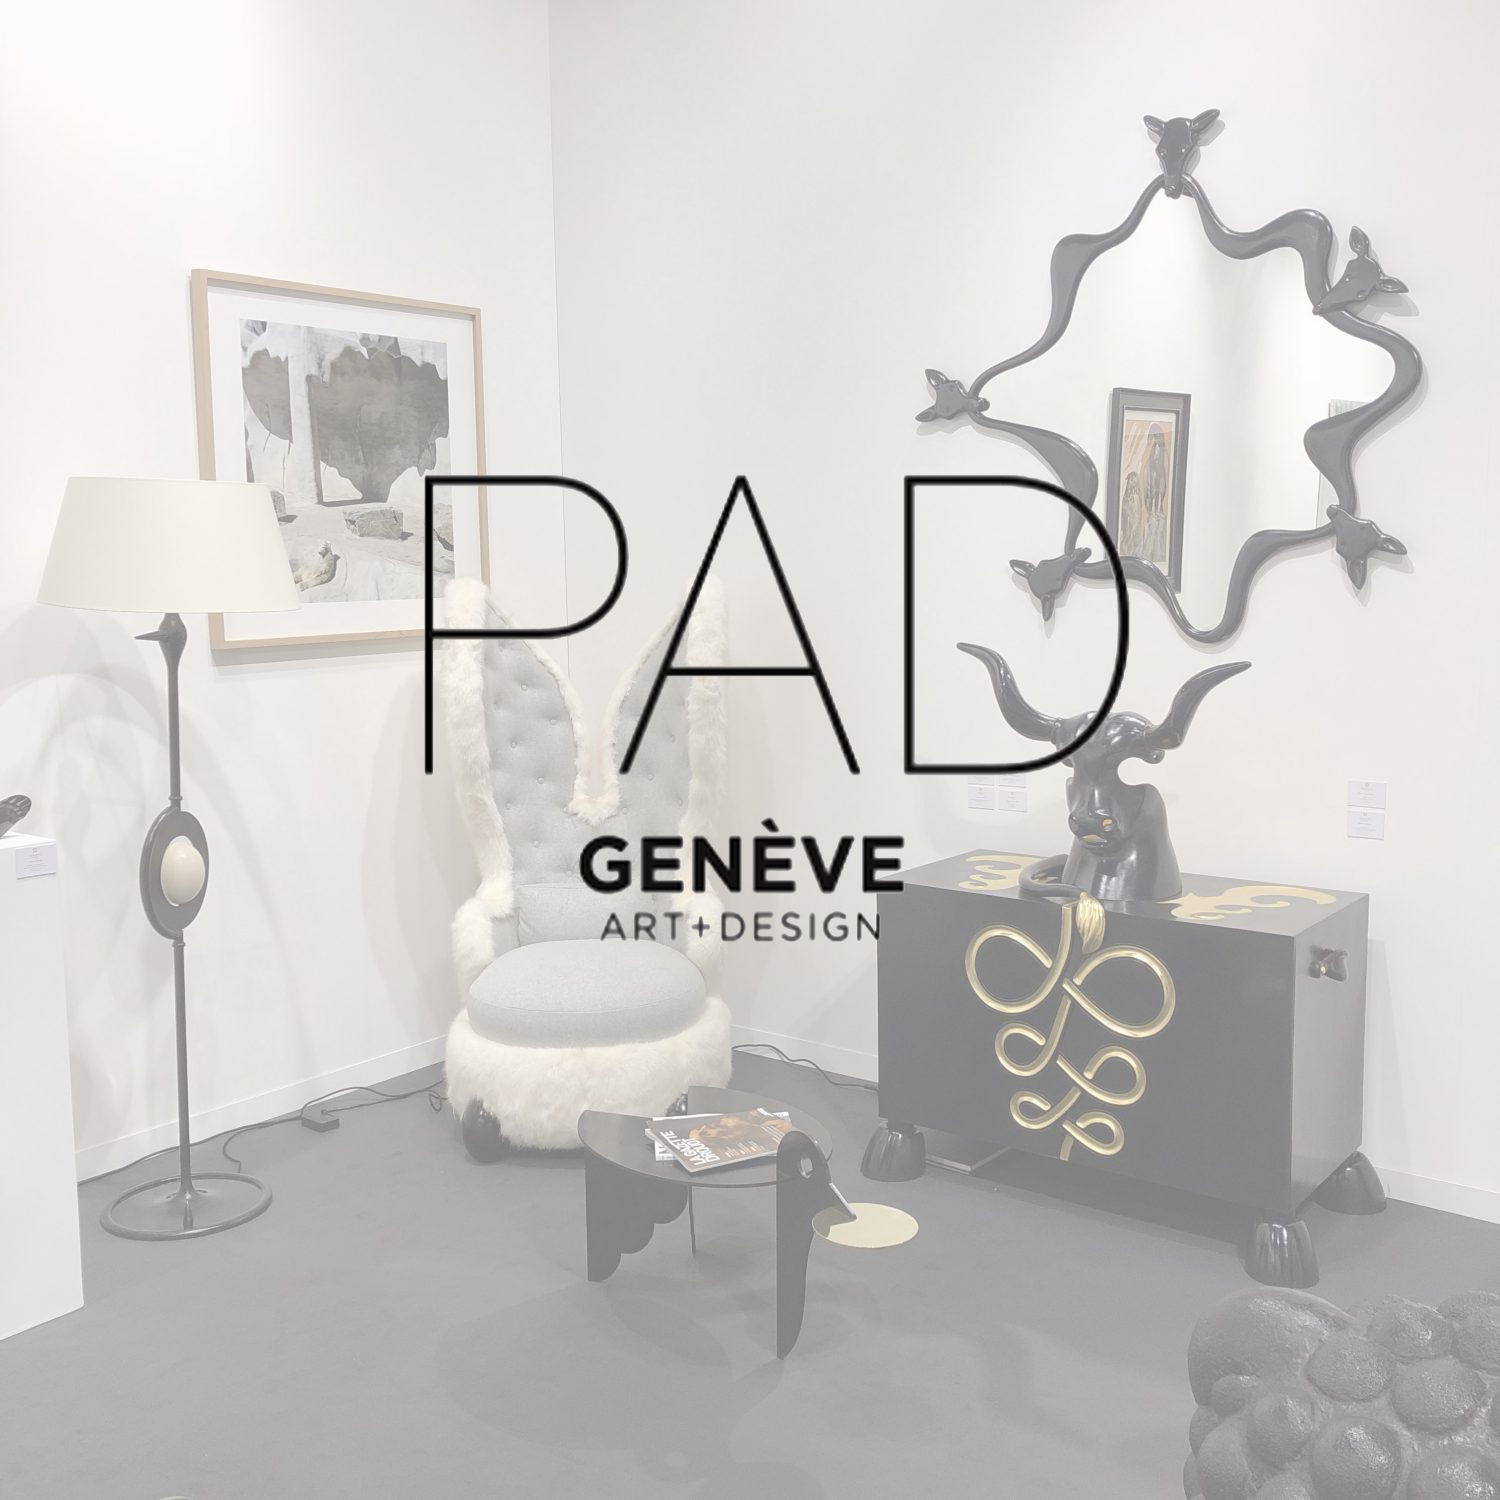 Everything You Need to Know about Design in PAD Geneve 2019 - Galerie Dumonteil PAD Geneve Everything You Need to Know about Design in PAD Geneve 2019 Everything You Need to Know about Design in PAD 2019 Galerie Dumonteil